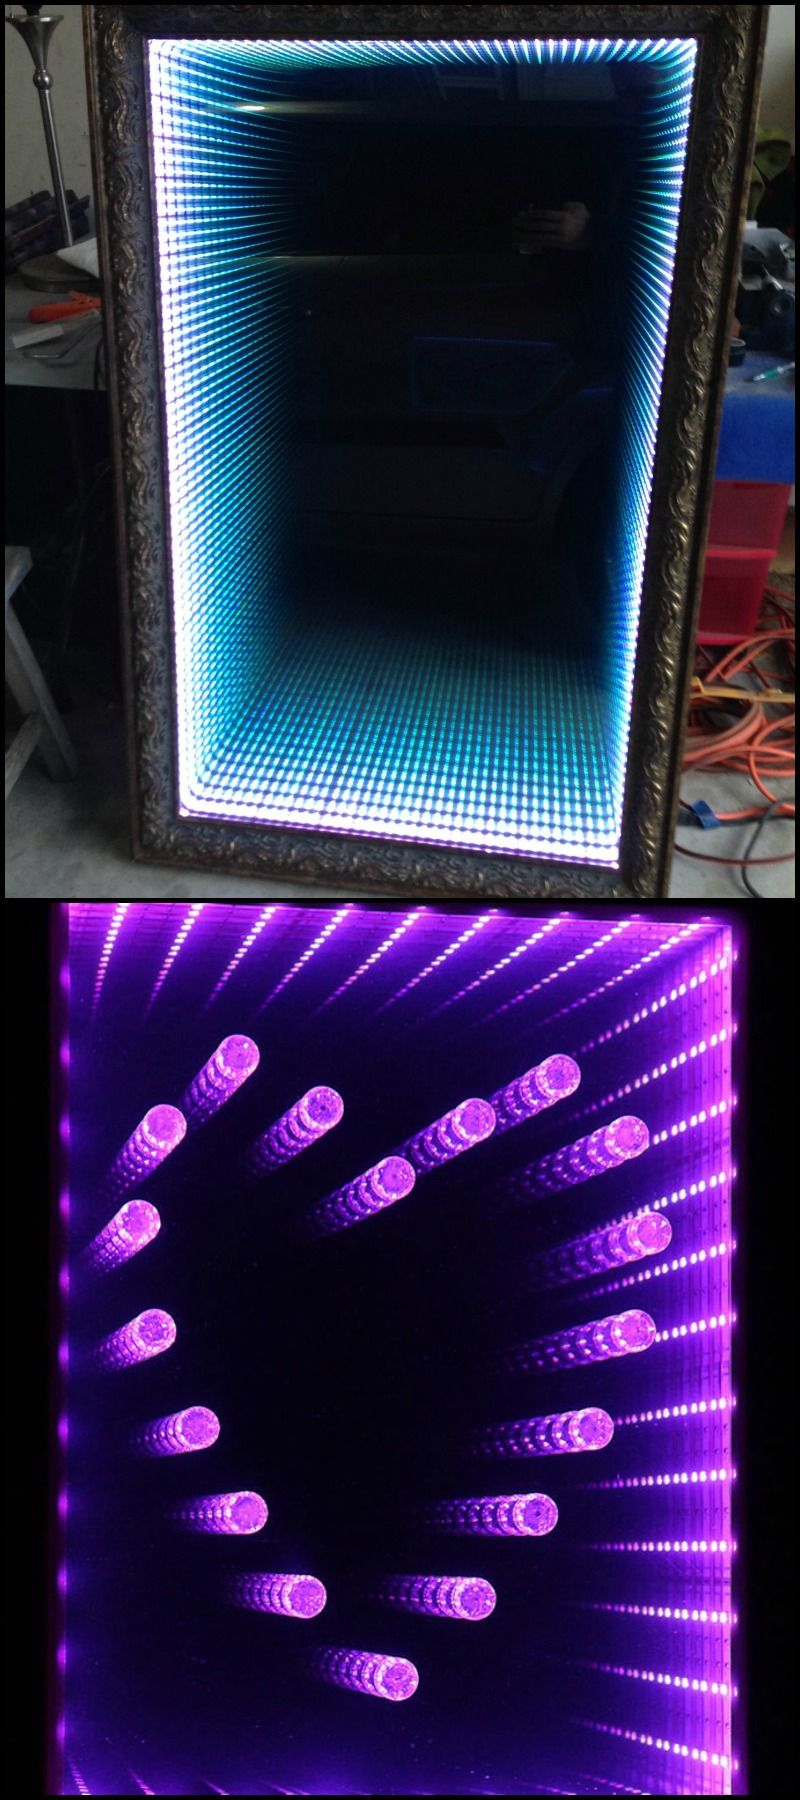 Learn How To Make An Infinity Led Mirror Http Theownerbuildernetwork Co Y4fz Have You Got A B Miroir A Faire Soi Meme Idee De Decoration Eclairage Corniche